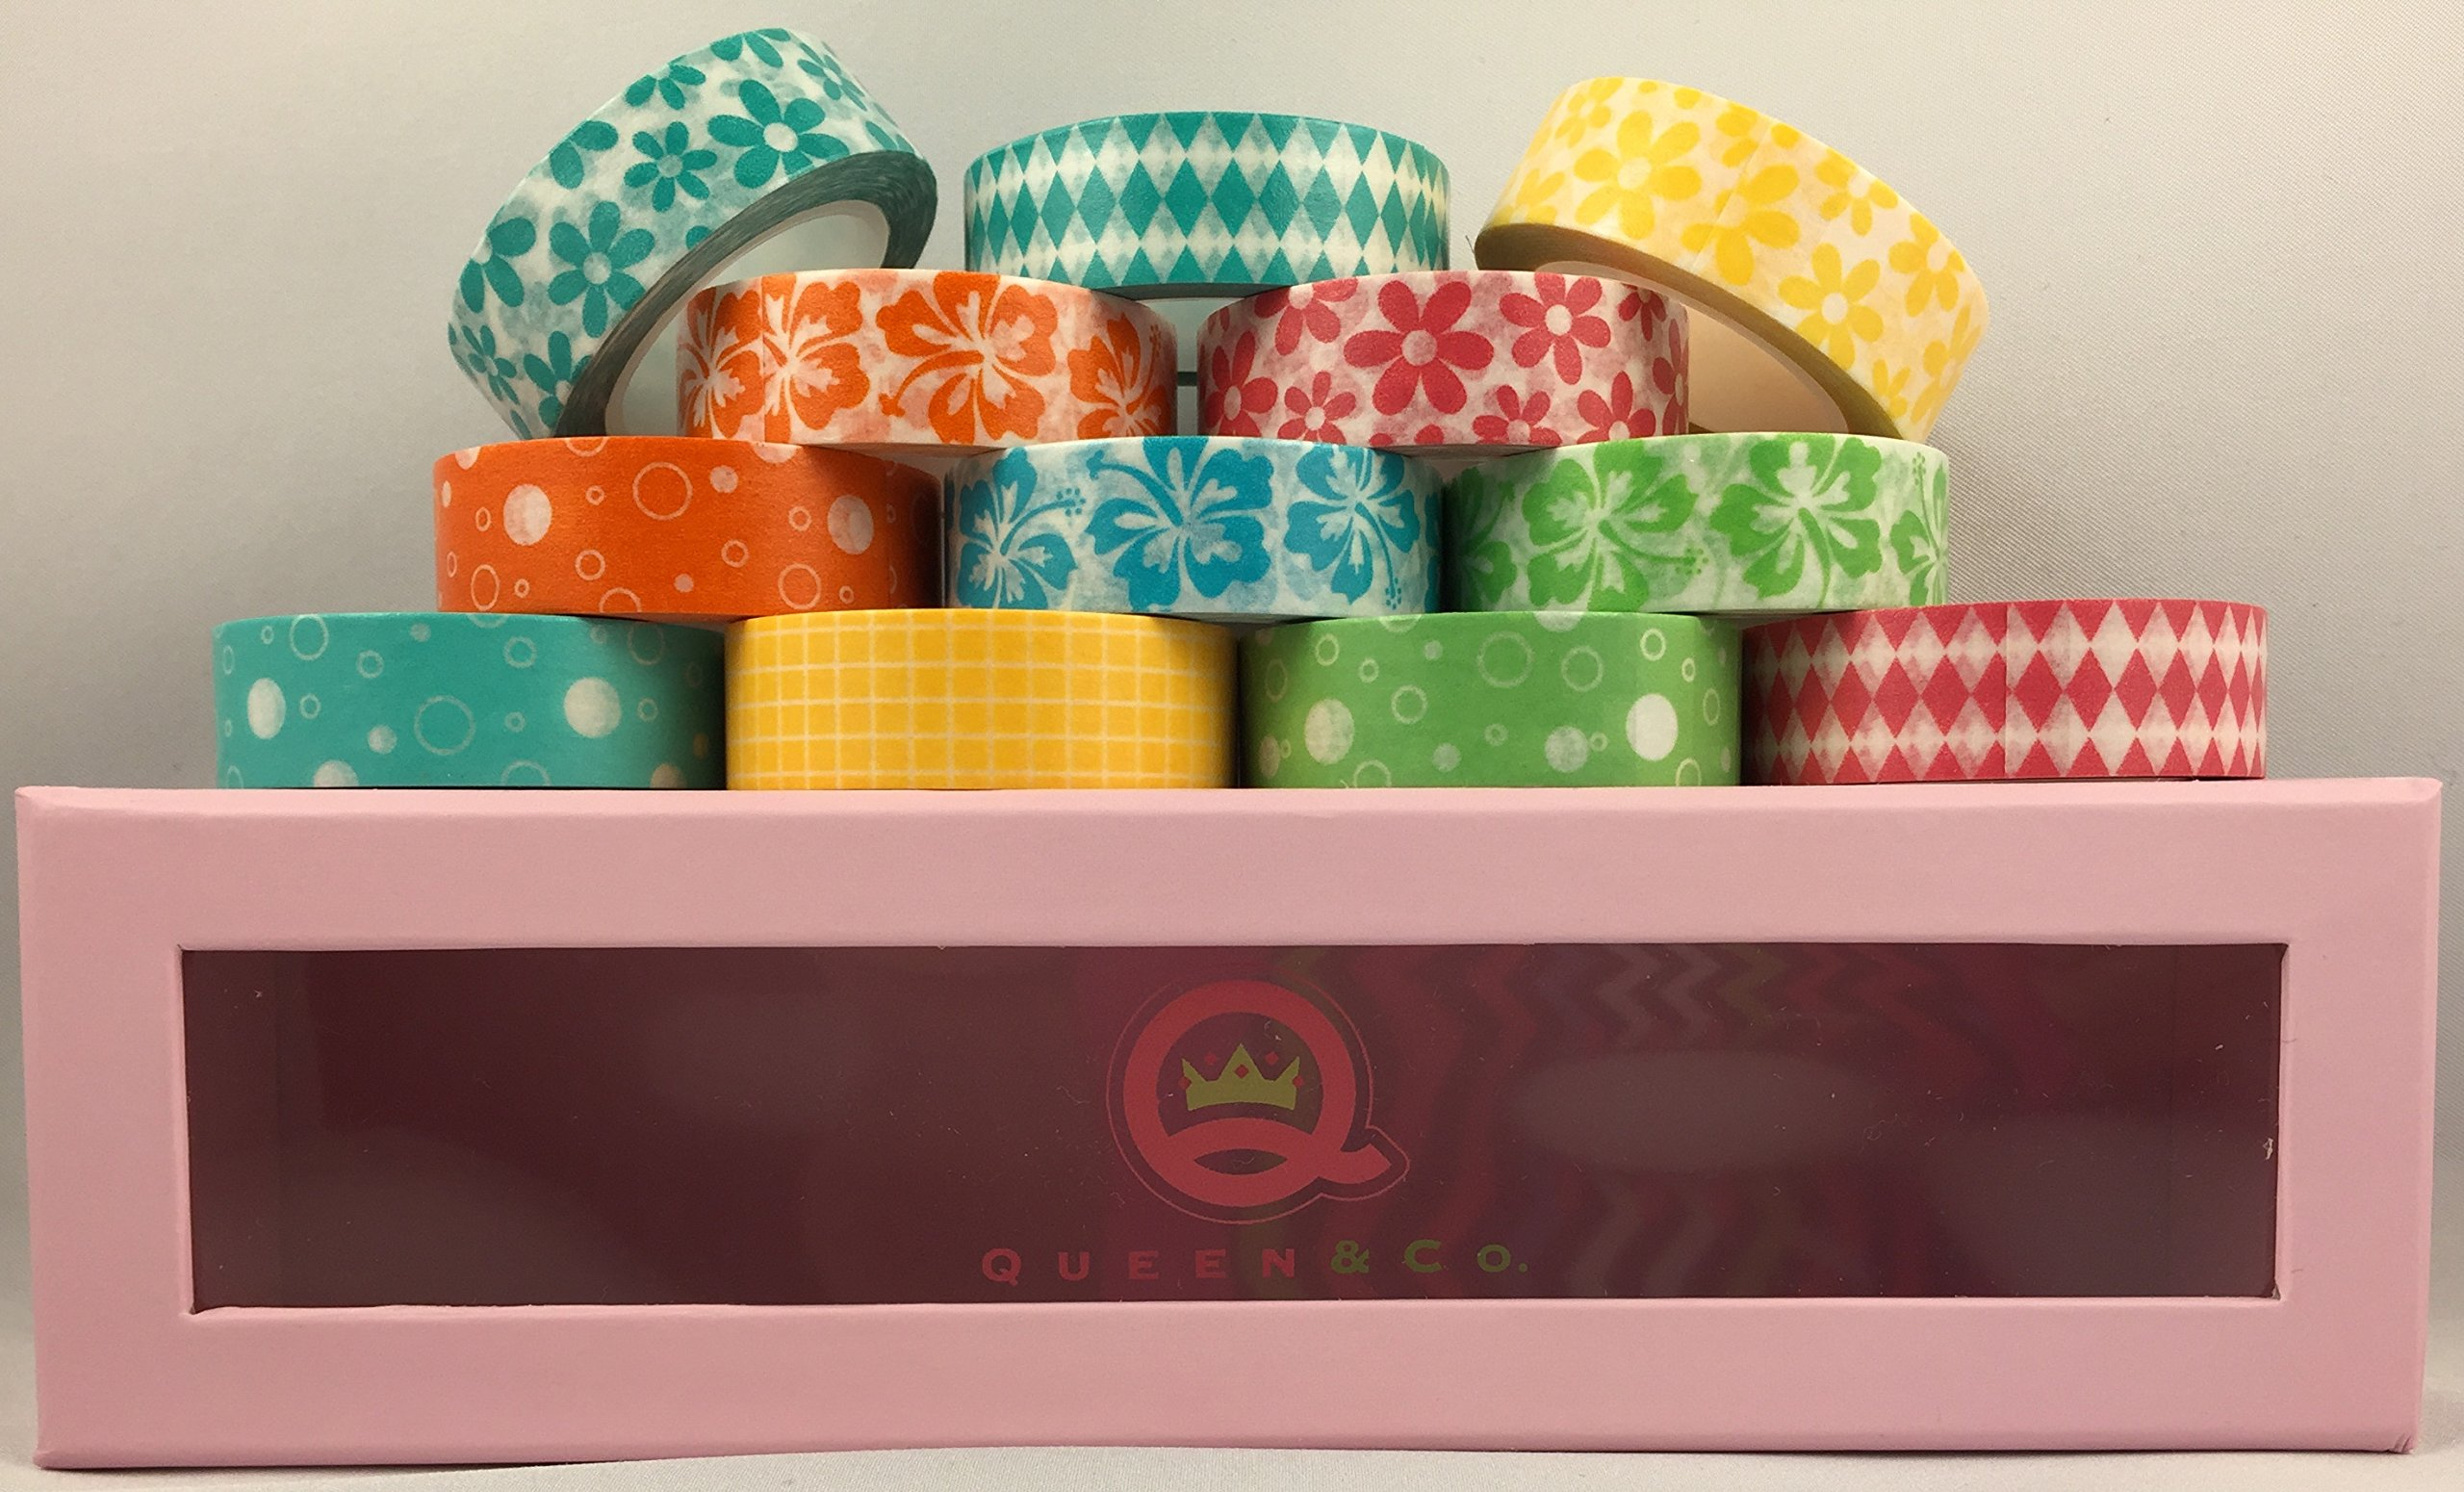 Washi Trendy Tape - Flowers, Diamonds, Bubbles, Polkadots, Grid - Self-adhesive Removeable Paper Tape Bundle of 12 Rolls, Each 1/2'' X 10 Yards in a Cute Limited Edition Pink Polkadot Storage Box, By Queen & Co.